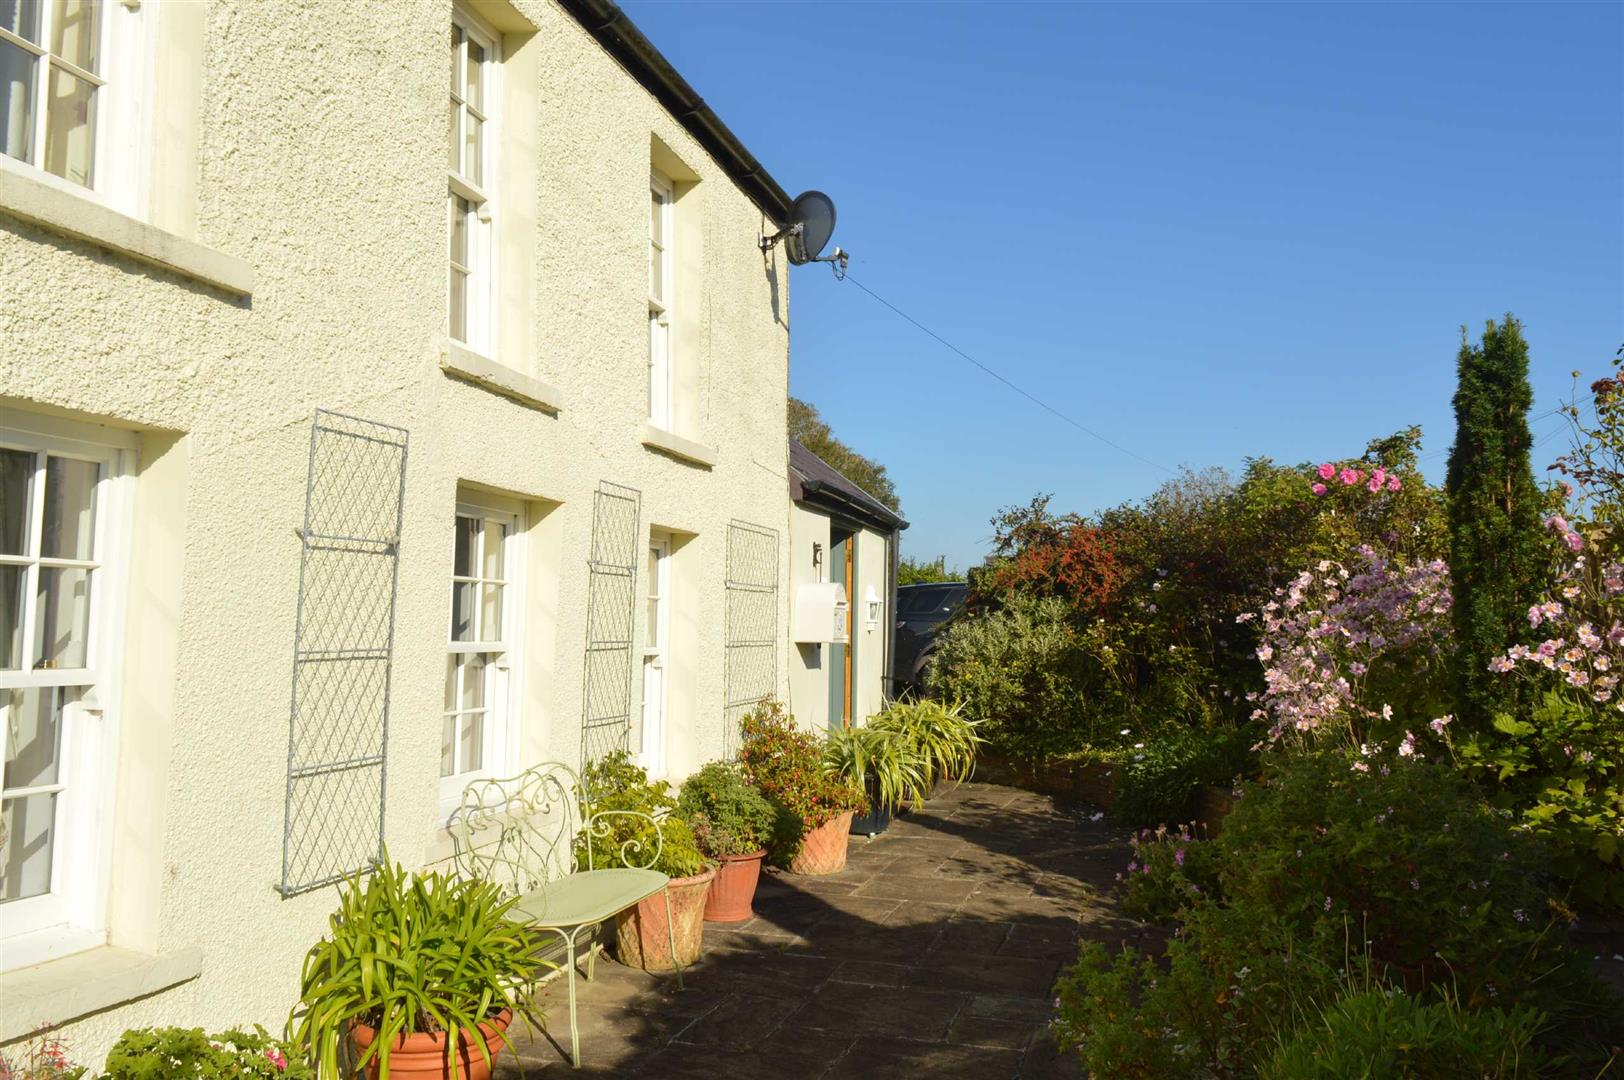 Yew Tree Cottage, Old Walls, Llanrhidian, Swansea, SA3 1HA